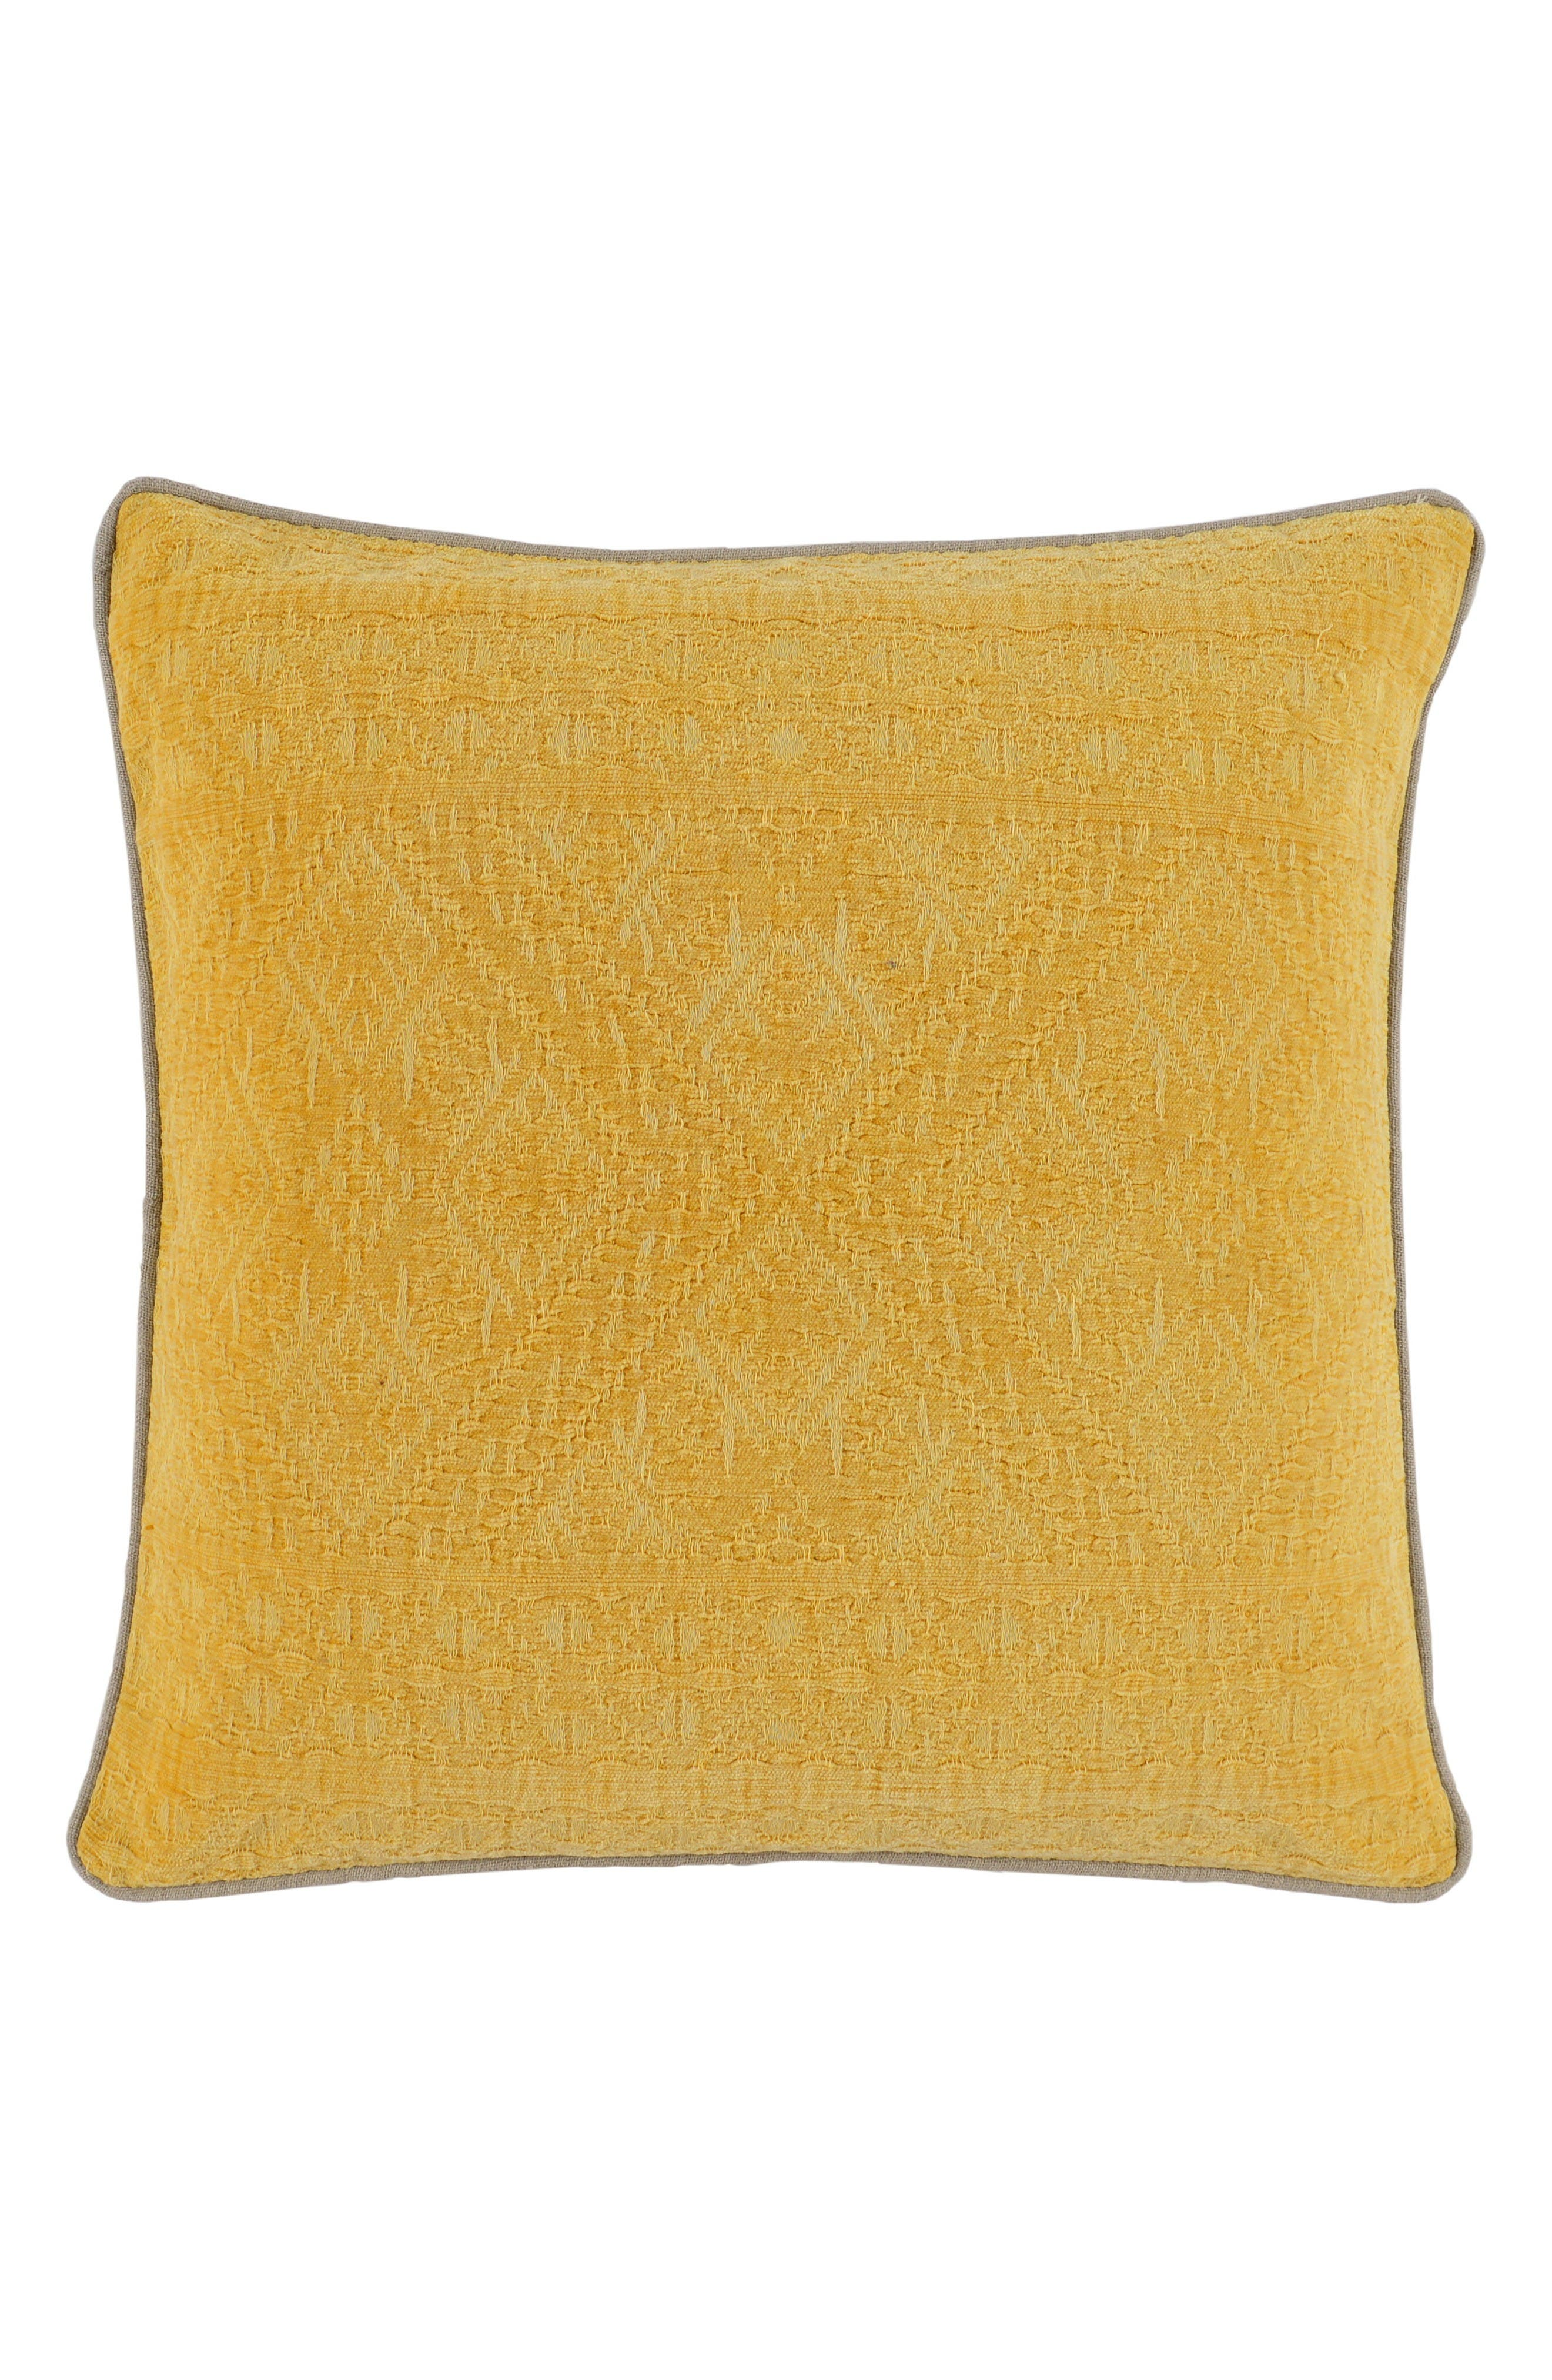 Palmer Accent Pillow,                         Main,                         color, Yellow